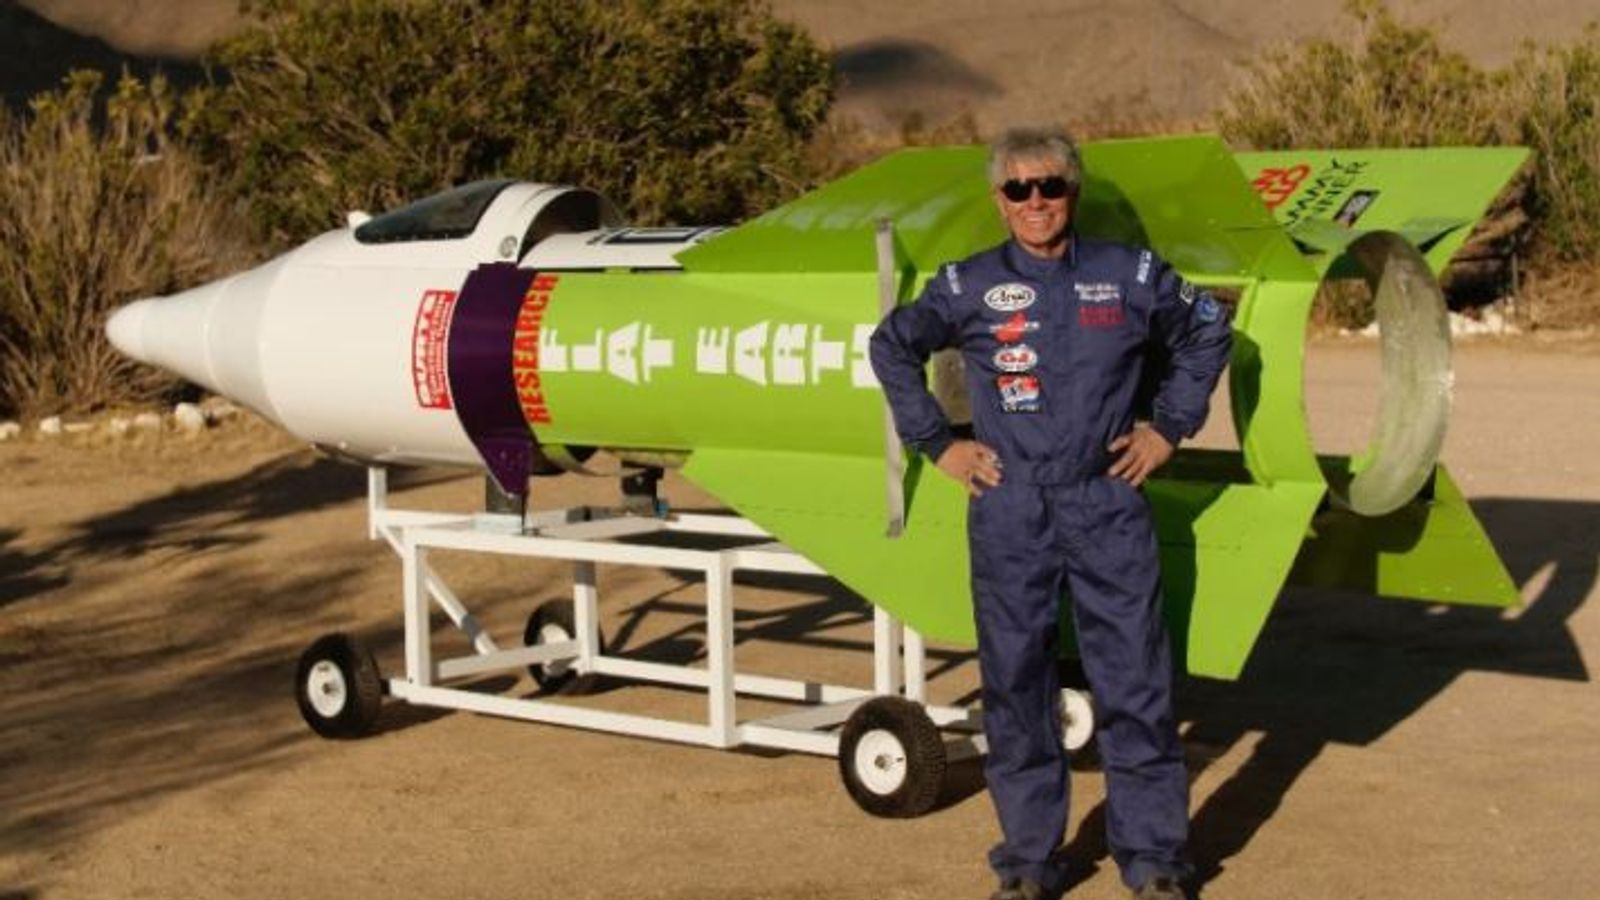 'Mad' Mike Hughes: Daredevil inventor killed after homemade rocket crashes in California